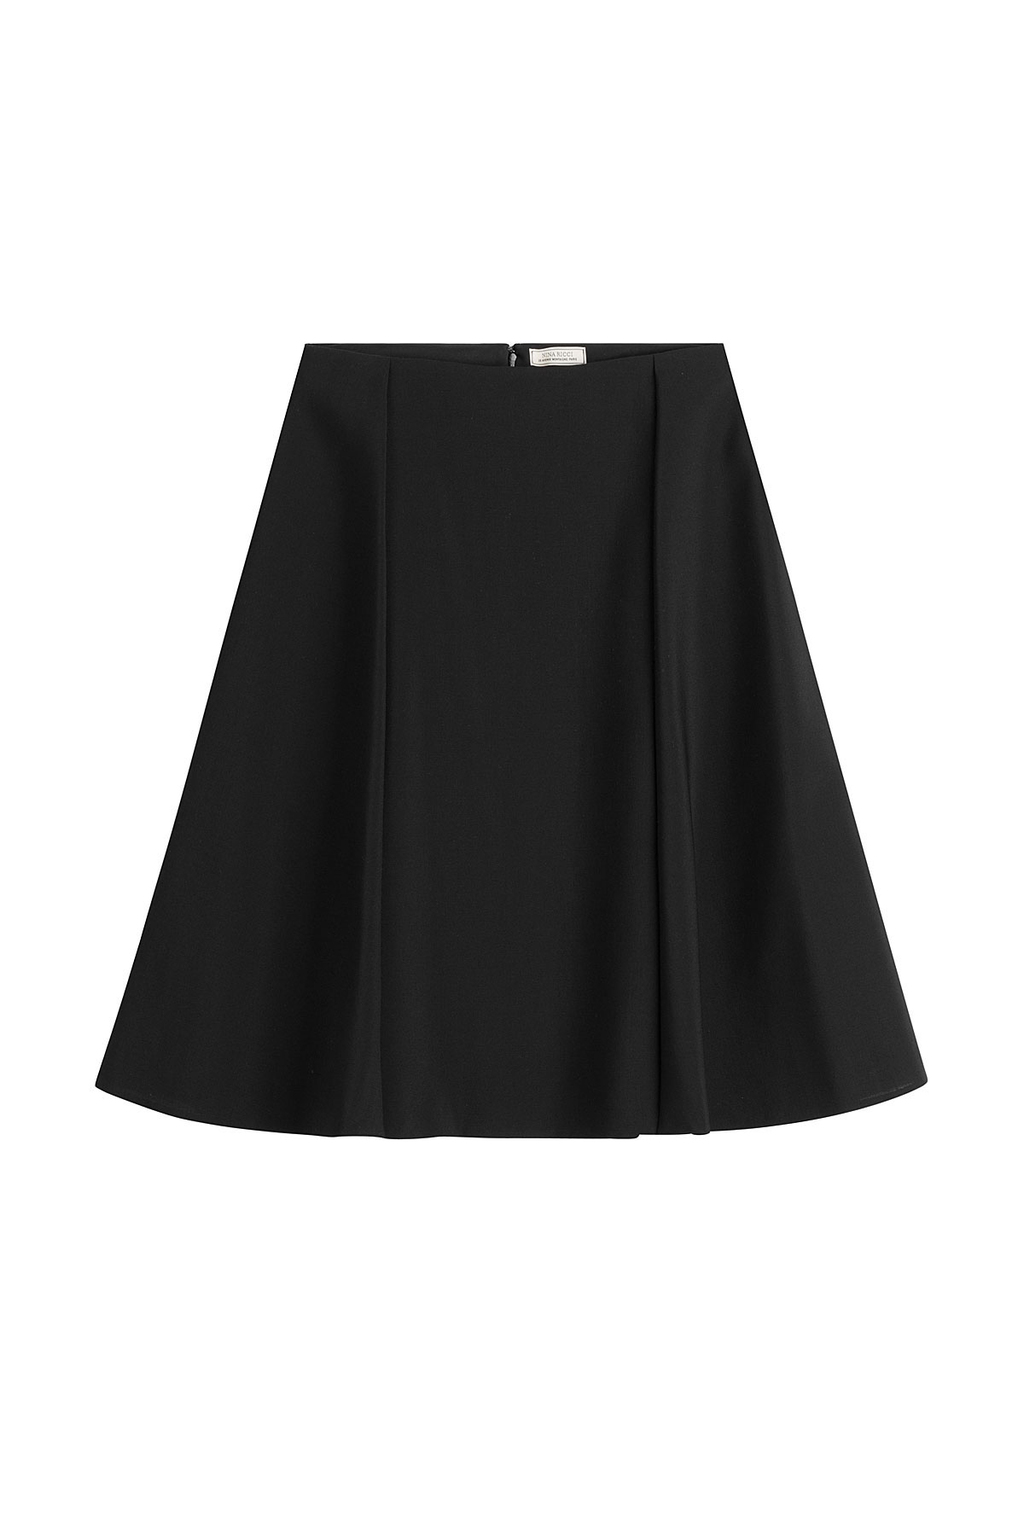 Flared Silk Skirt Black - pattern: plain; fit: loose/voluminous; waist: mid/regular rise; predominant colour: black; occasions: evening; length: just above the knee; style: a-line; fibres: silk - 100%; texture group: silky - light; pattern type: fabric; season: s/s 2016; wardrobe: event